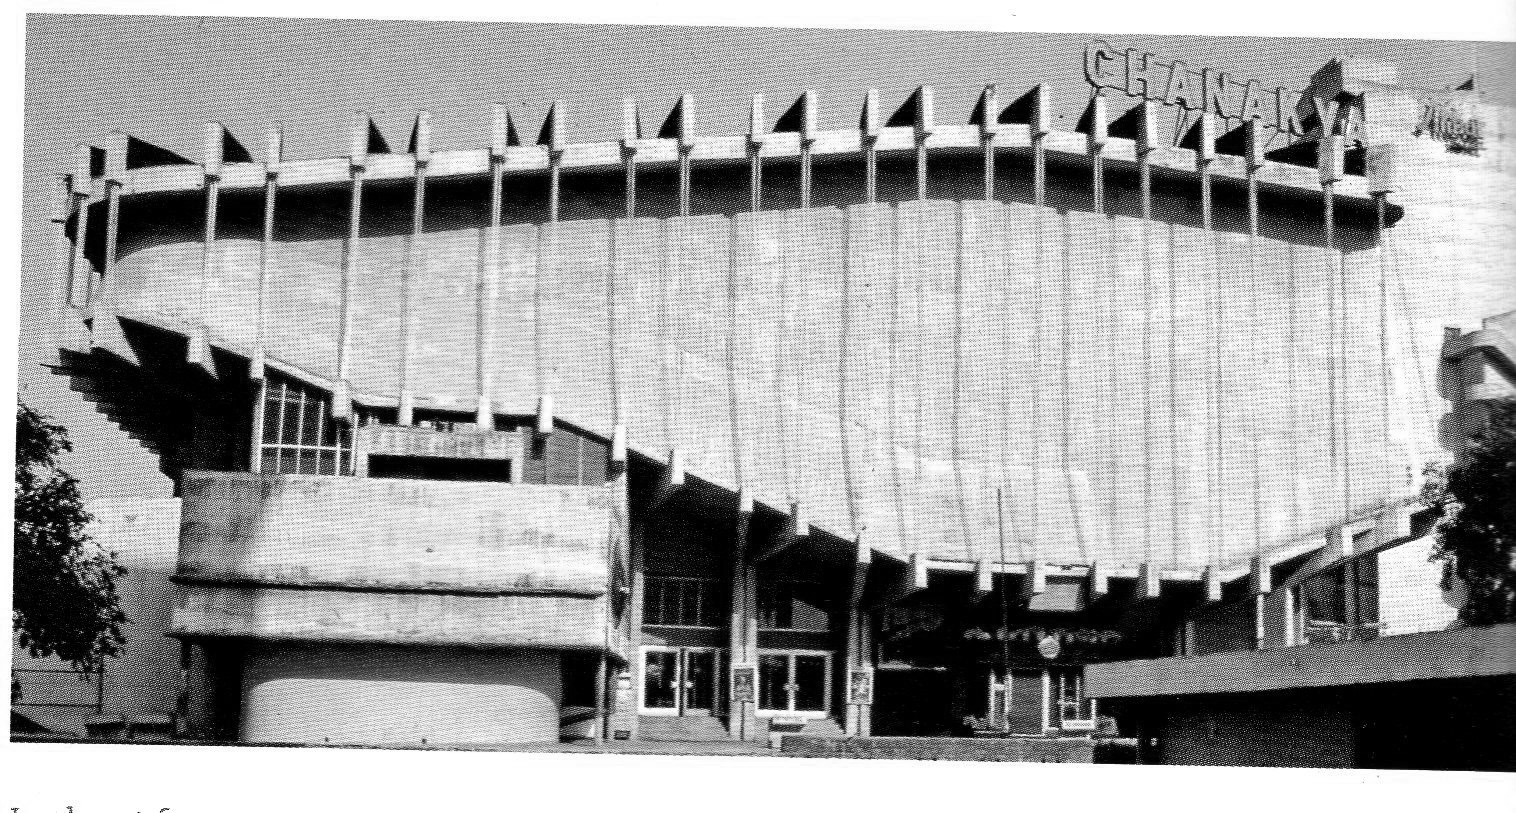 A journey of 100 years of Architecture in India | Part 02 - 1967-69 Chanakya Cinema, New Delhi